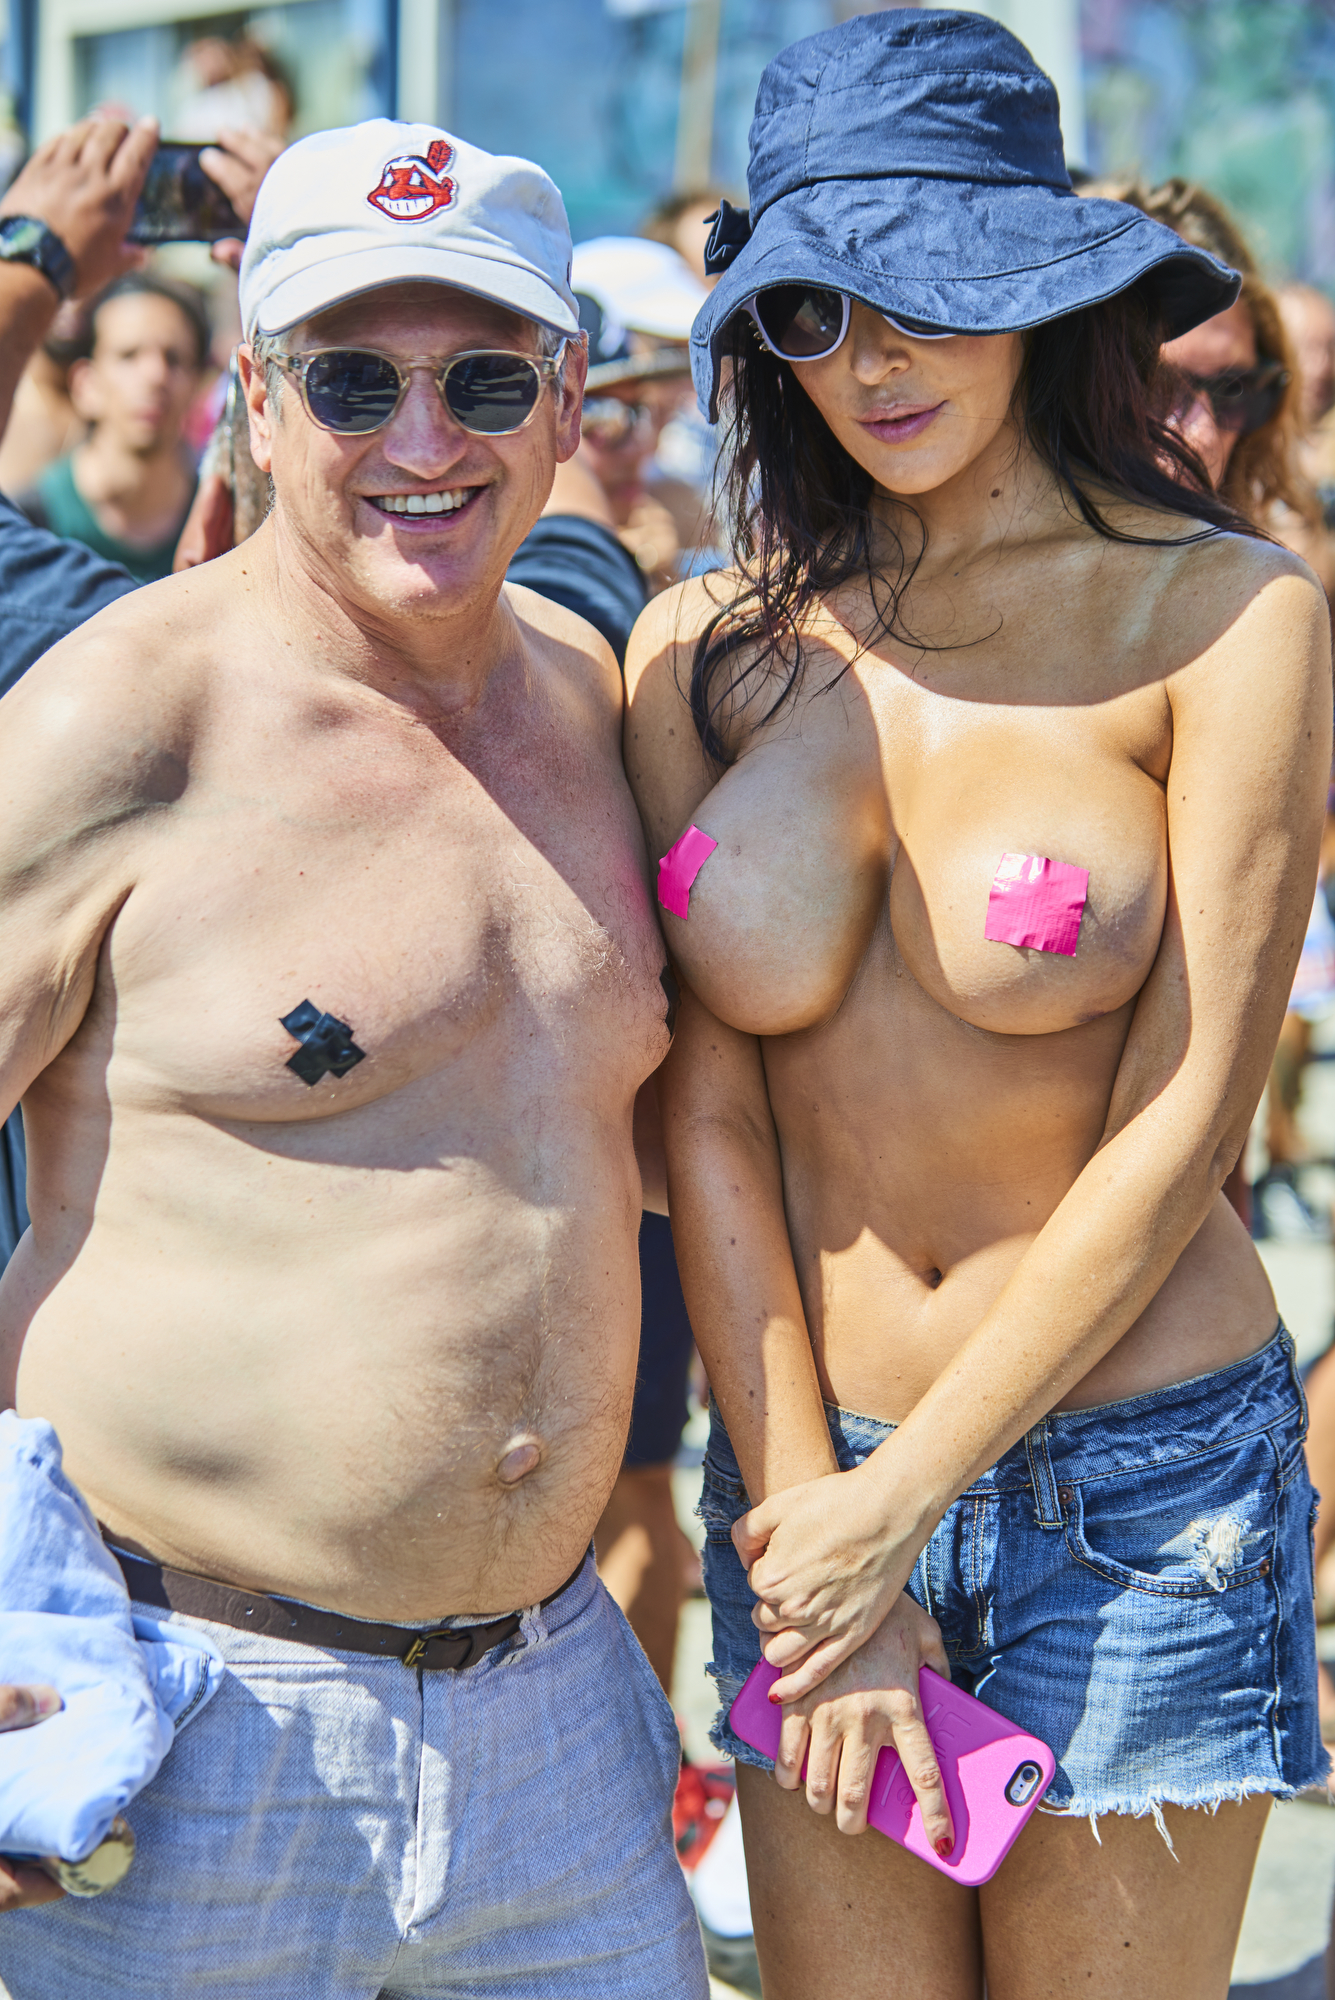 check out the breast photos from go topless day 2016